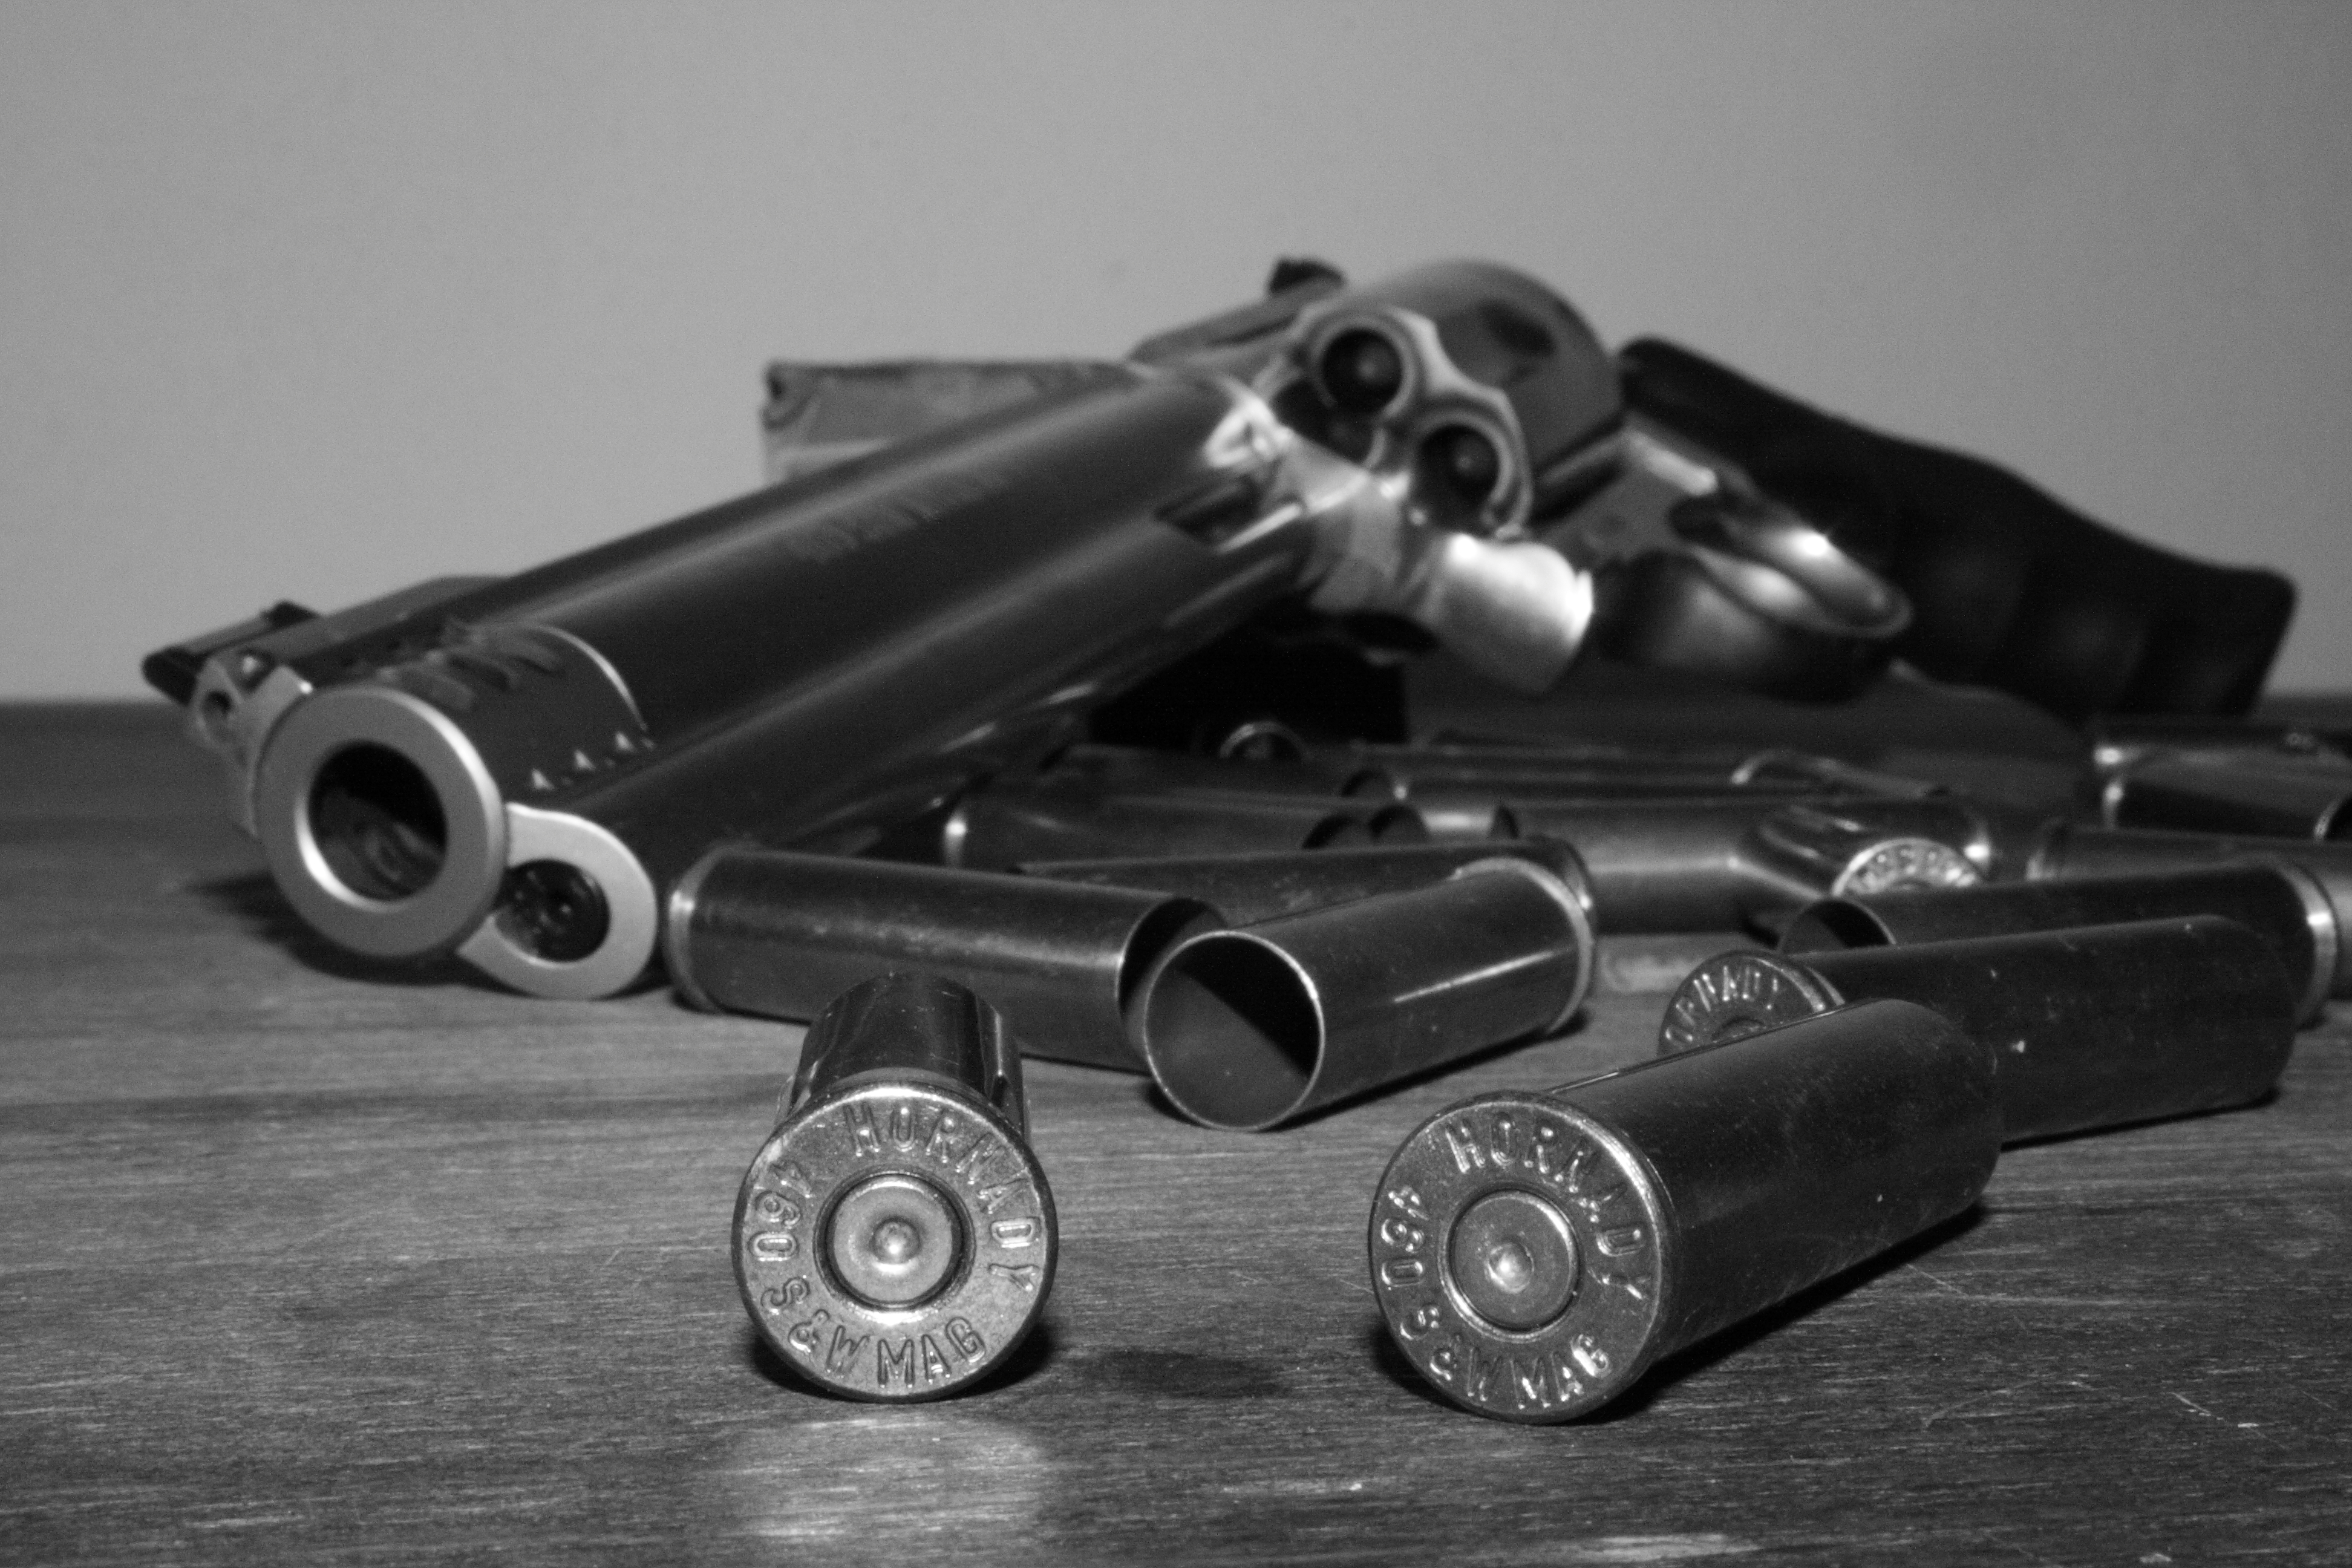 Trouble ahead: Smith & Wesson's stock tanks on blowout earnings